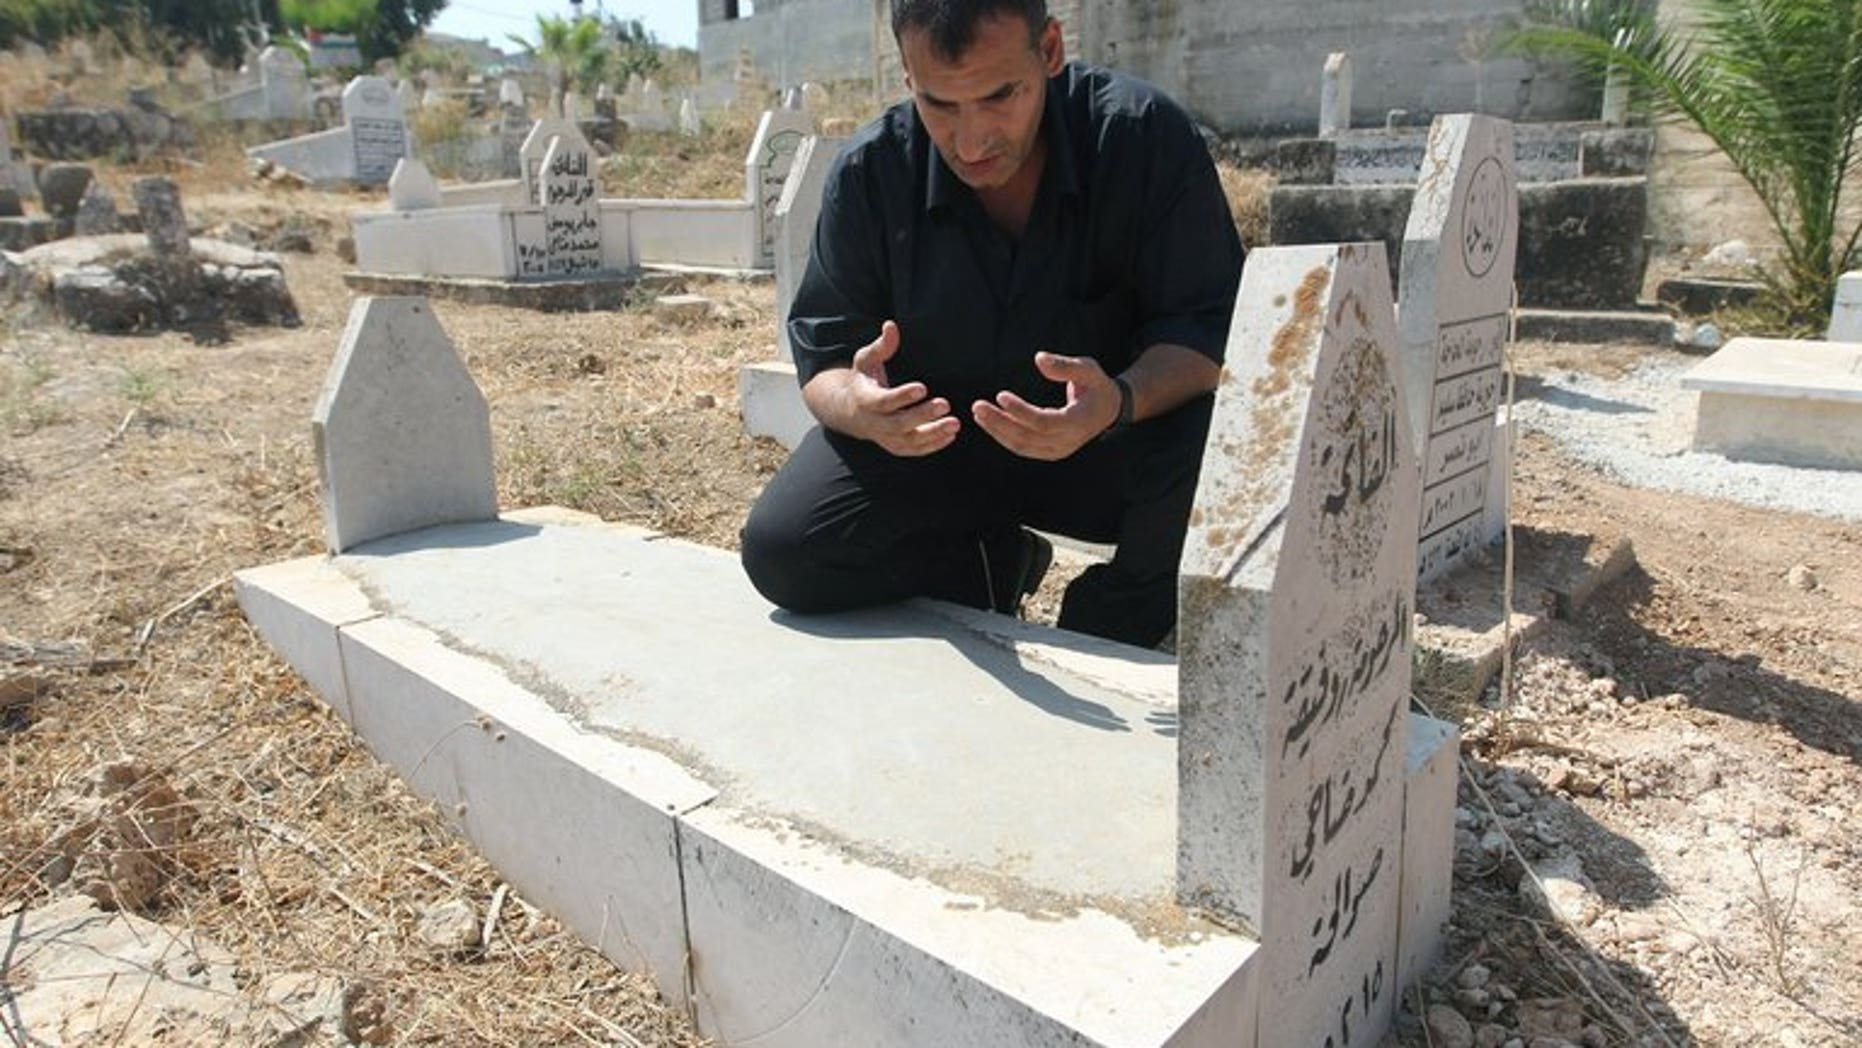 Released Palestinian prisoner Hosni Sawalha prays at the graves of his parents -- who died while he was in an Israeli jail -- in the the West Bank village of Azmut, on August 14, 2013. Tears streamed down Sawalha's face as he recited from the Koran alongside the graves of his parents, who died while he was in Israeli jail since his teens.